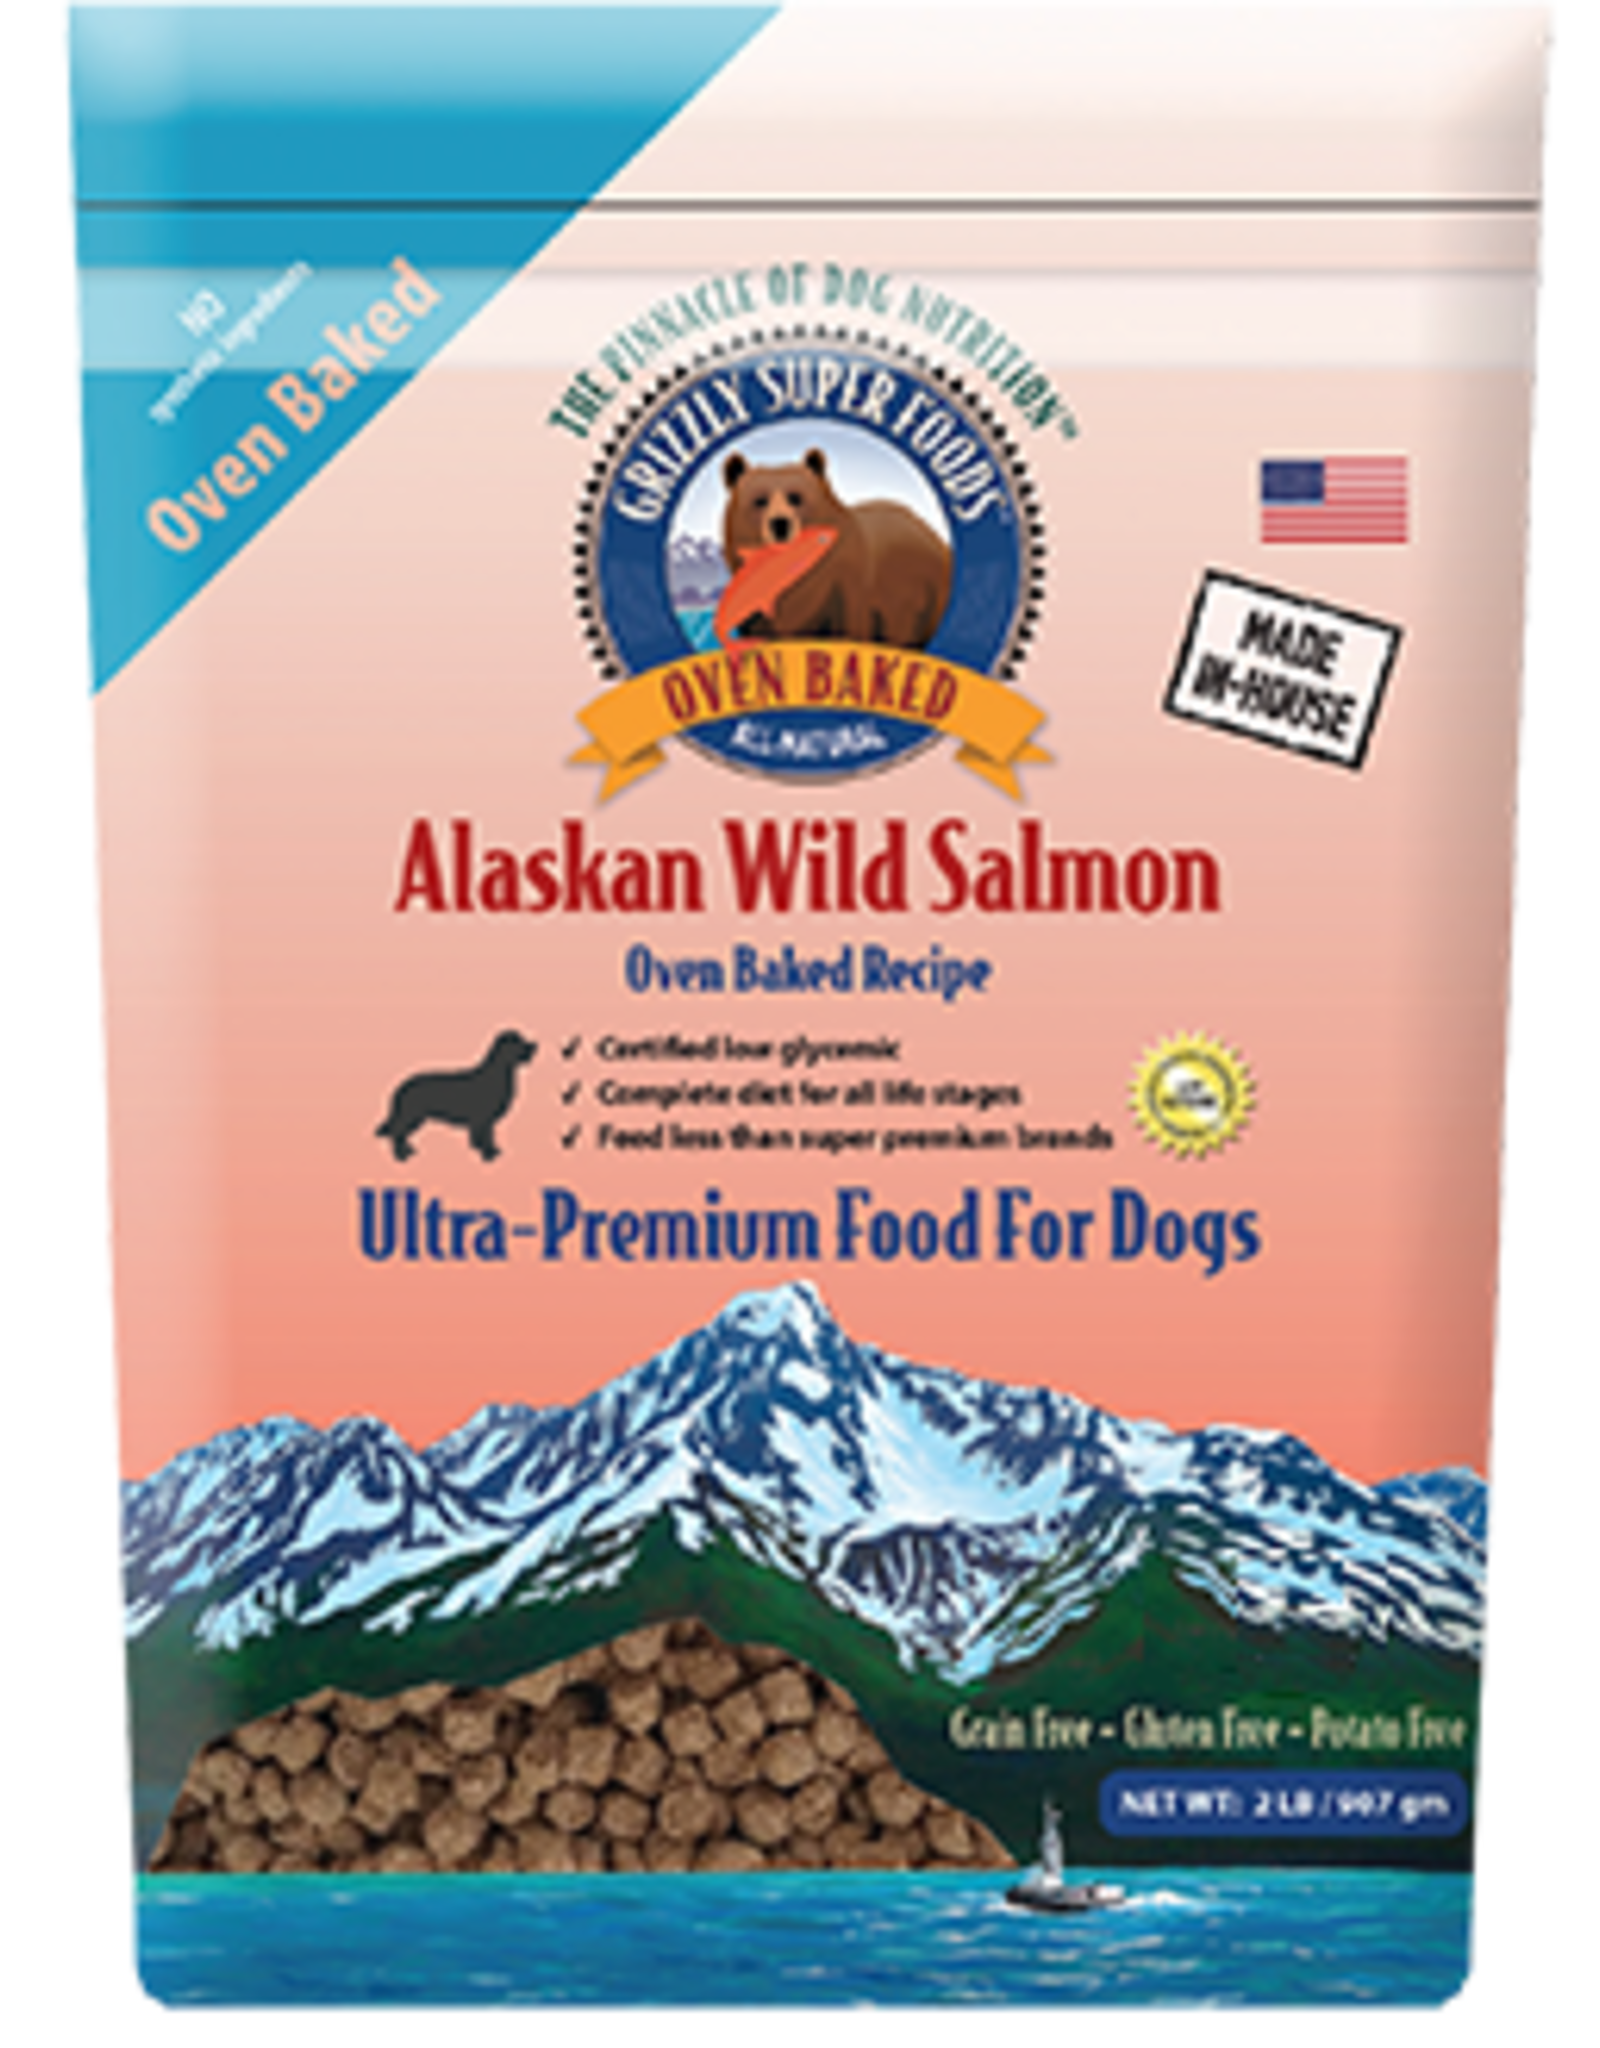 Grizzly Pet Products Grizzly Super Foods Alaska Wild Salmon Oven Baked Recipe Dog Food 3 lb